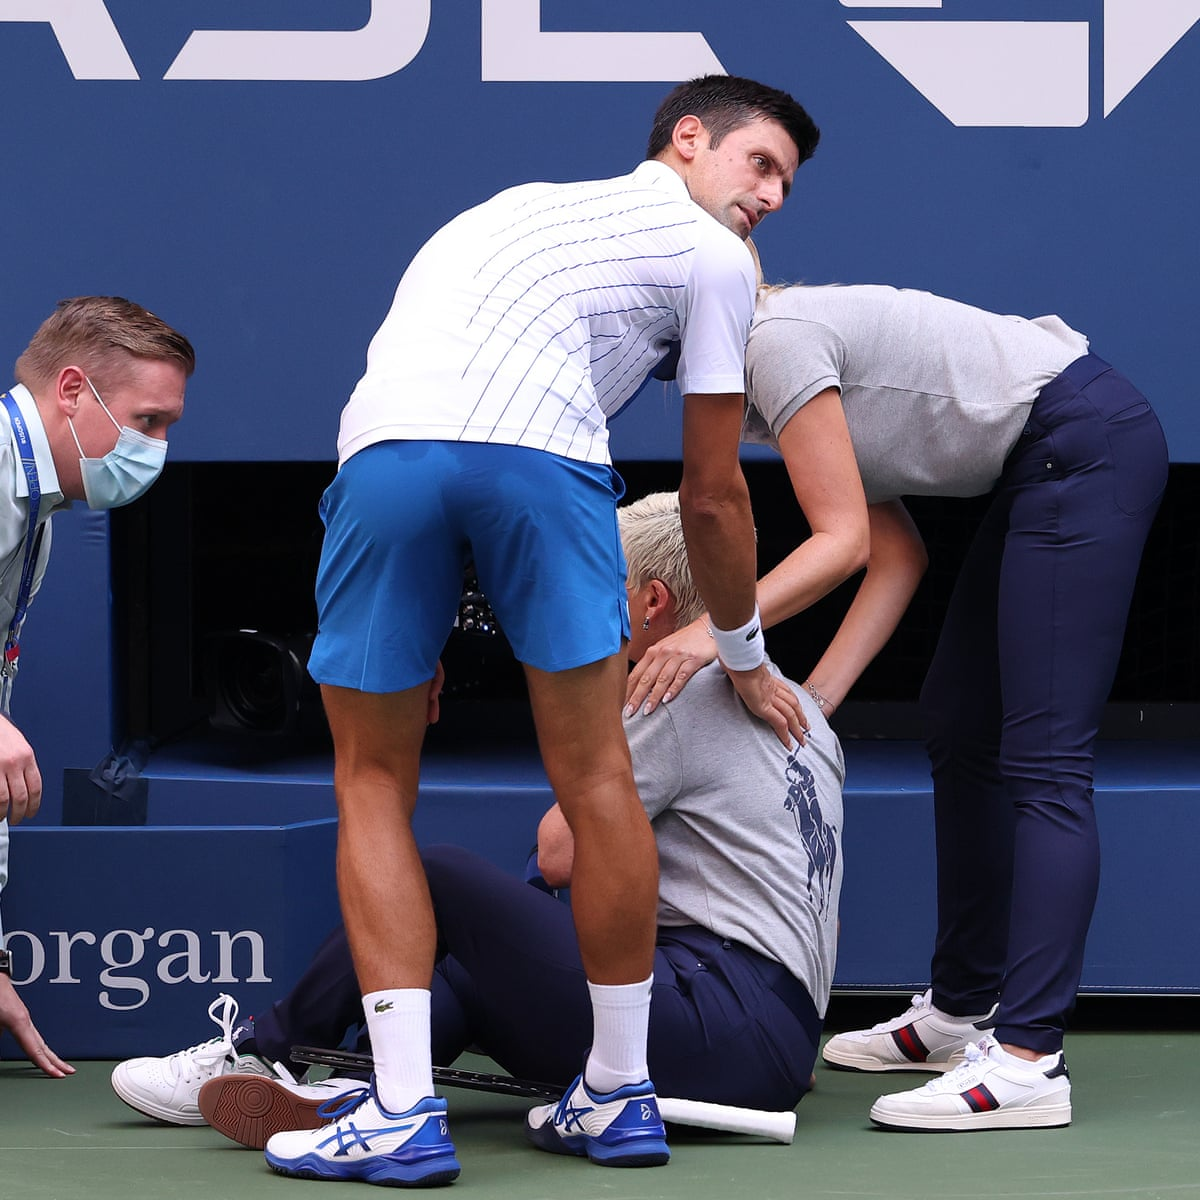 Us Open Novak Djokovic Defaulted From Tournament After Hitting Line Judge As It Happened Sport The Guardian